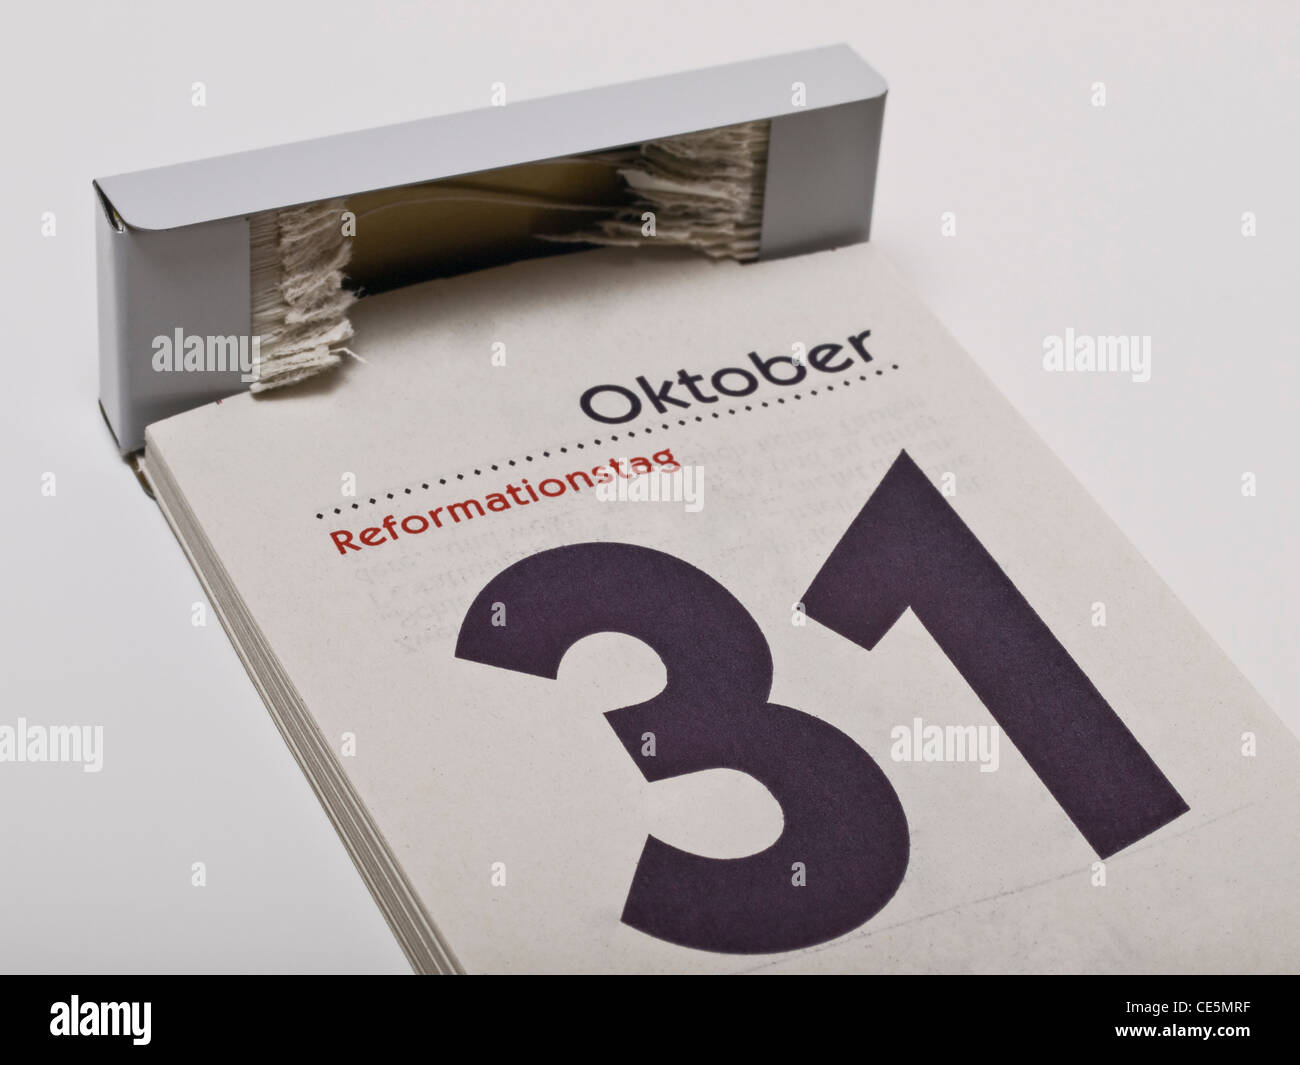 Ein Kalender zeigt den 31. Oktober, Reformationstag, an | A calendar shows October 31st, Reformation Day - Stock Image